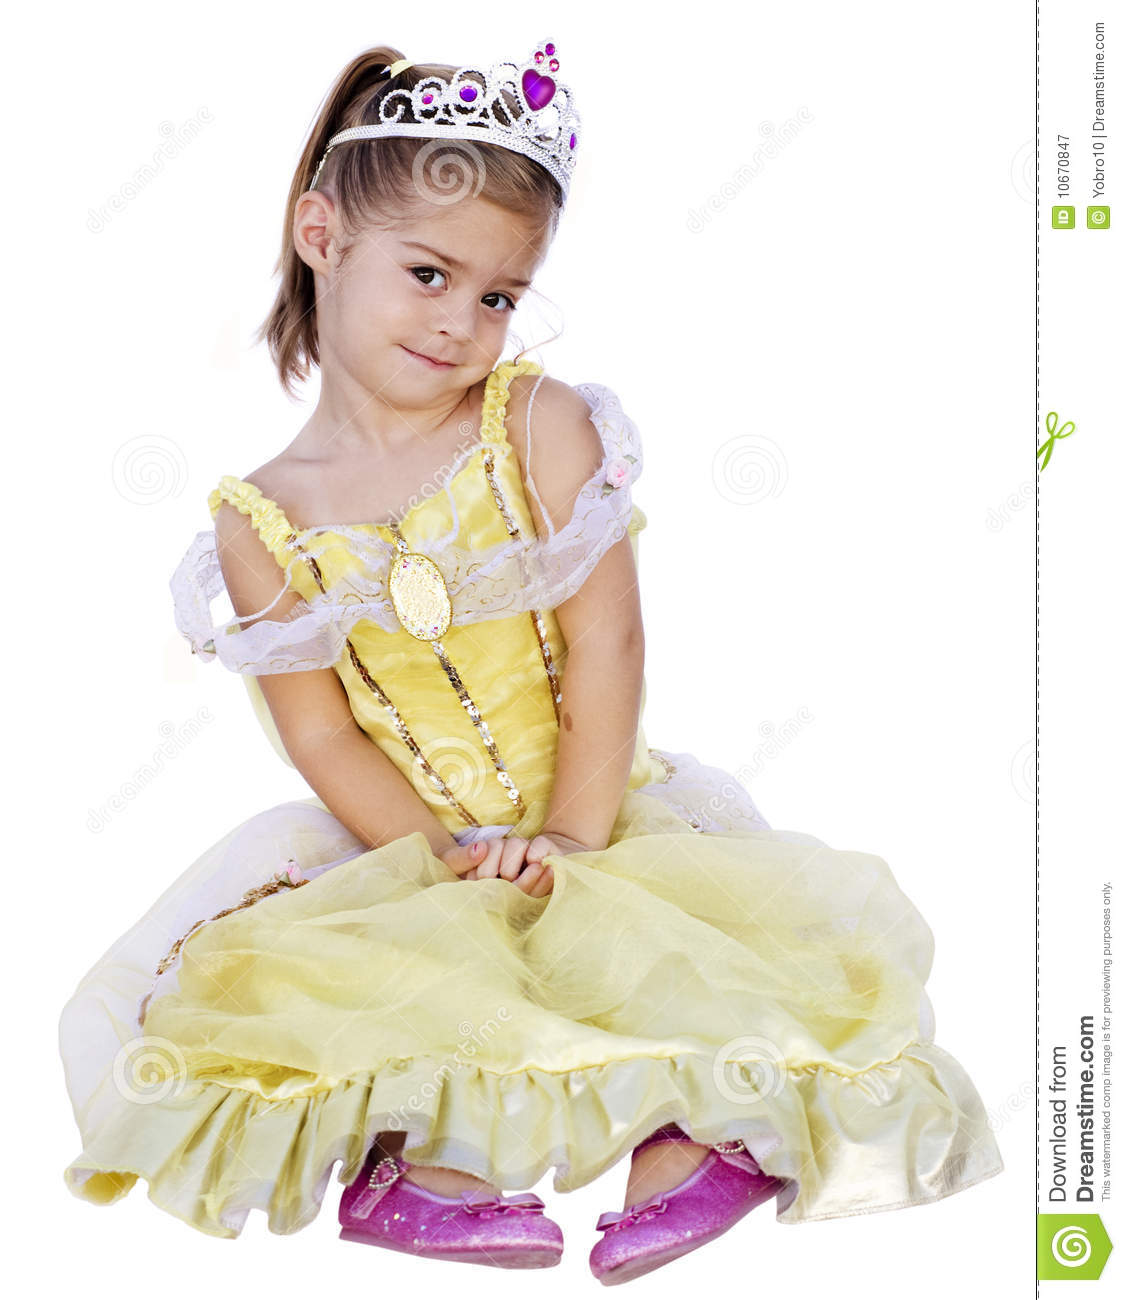 Cute Little Girl With Princess Dress On Royalty Free Stock ...